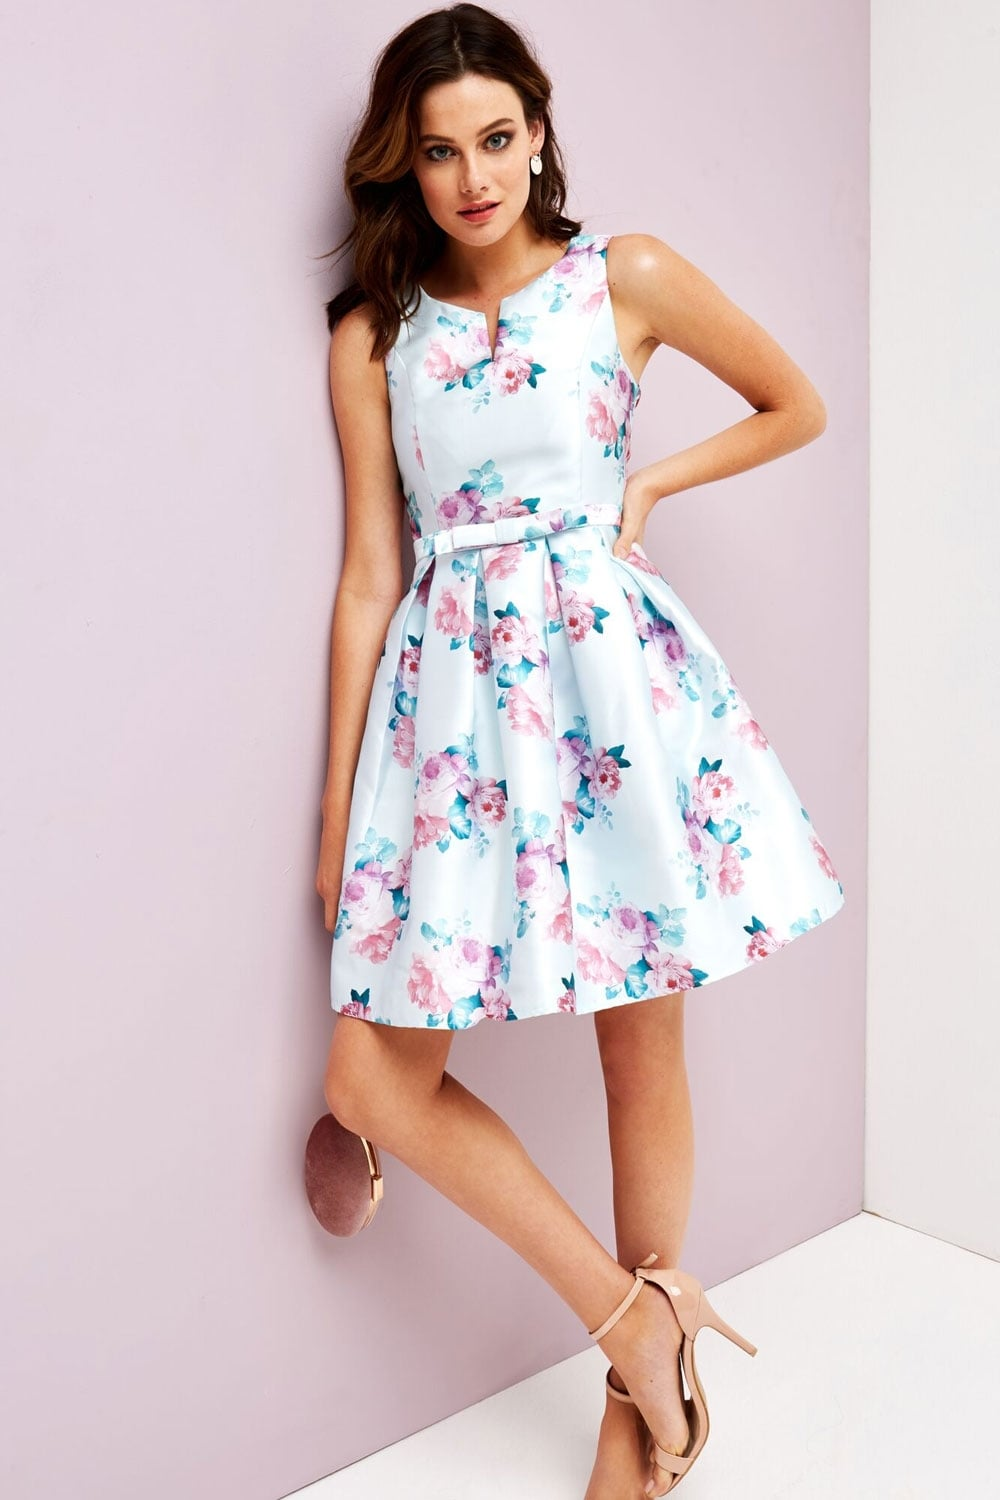 Free shipping Flower Print Cut Out Skater Dress ROSE RED M under $ in Print Dresses online store. Best Chiffon Short Dress Online and Short Bohemian Dress .